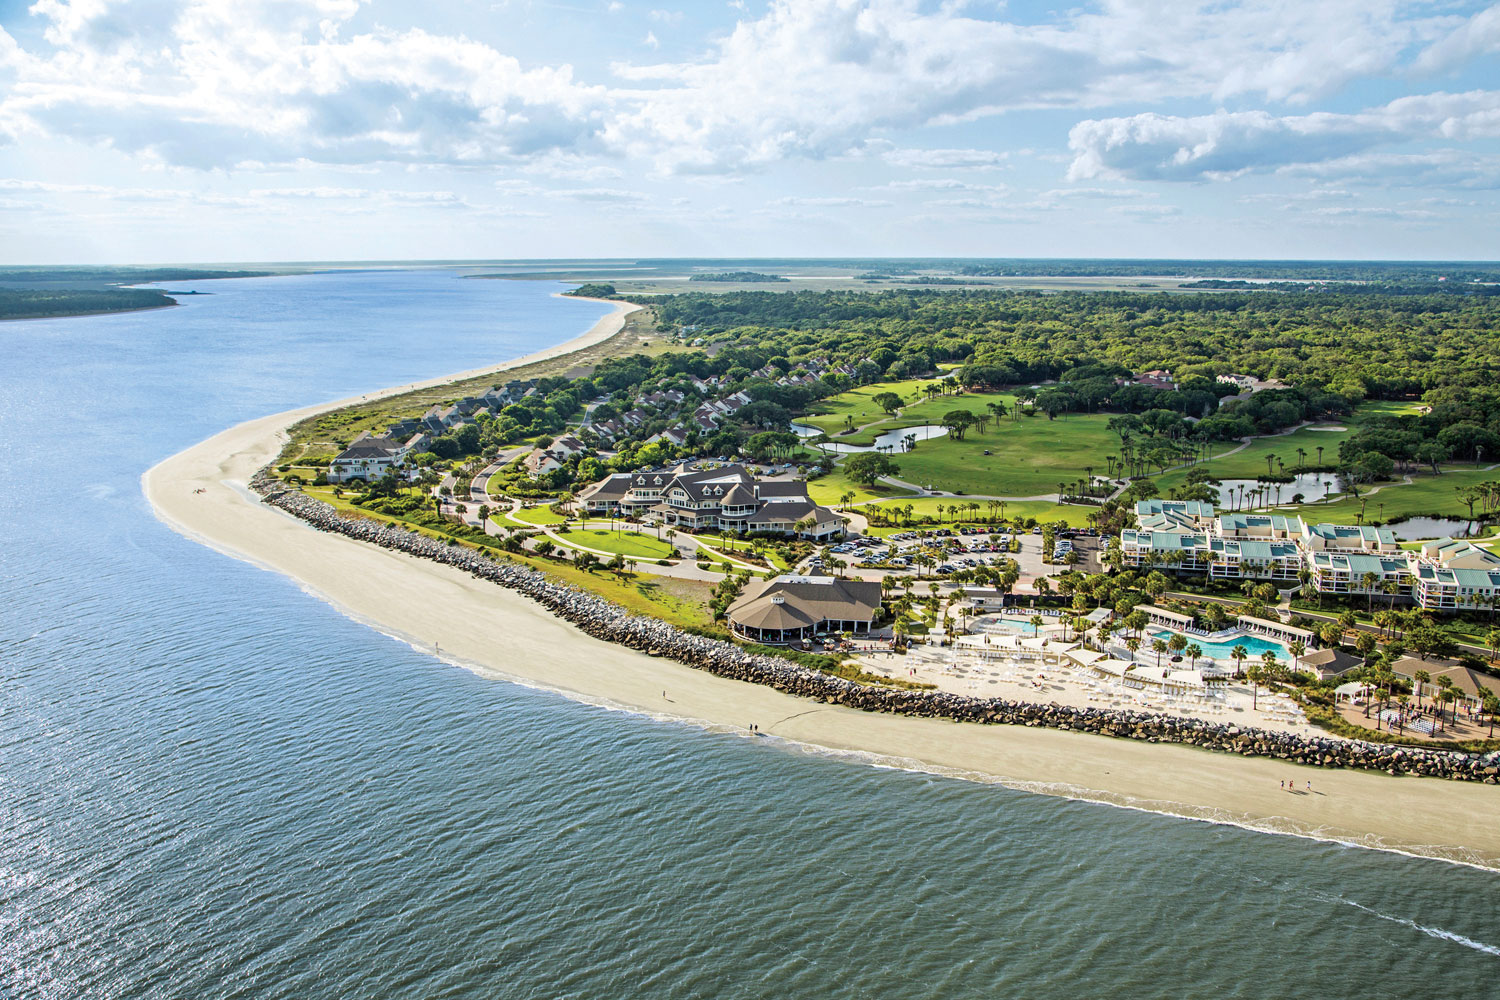 aerial view of the seabrook island beach club and pool